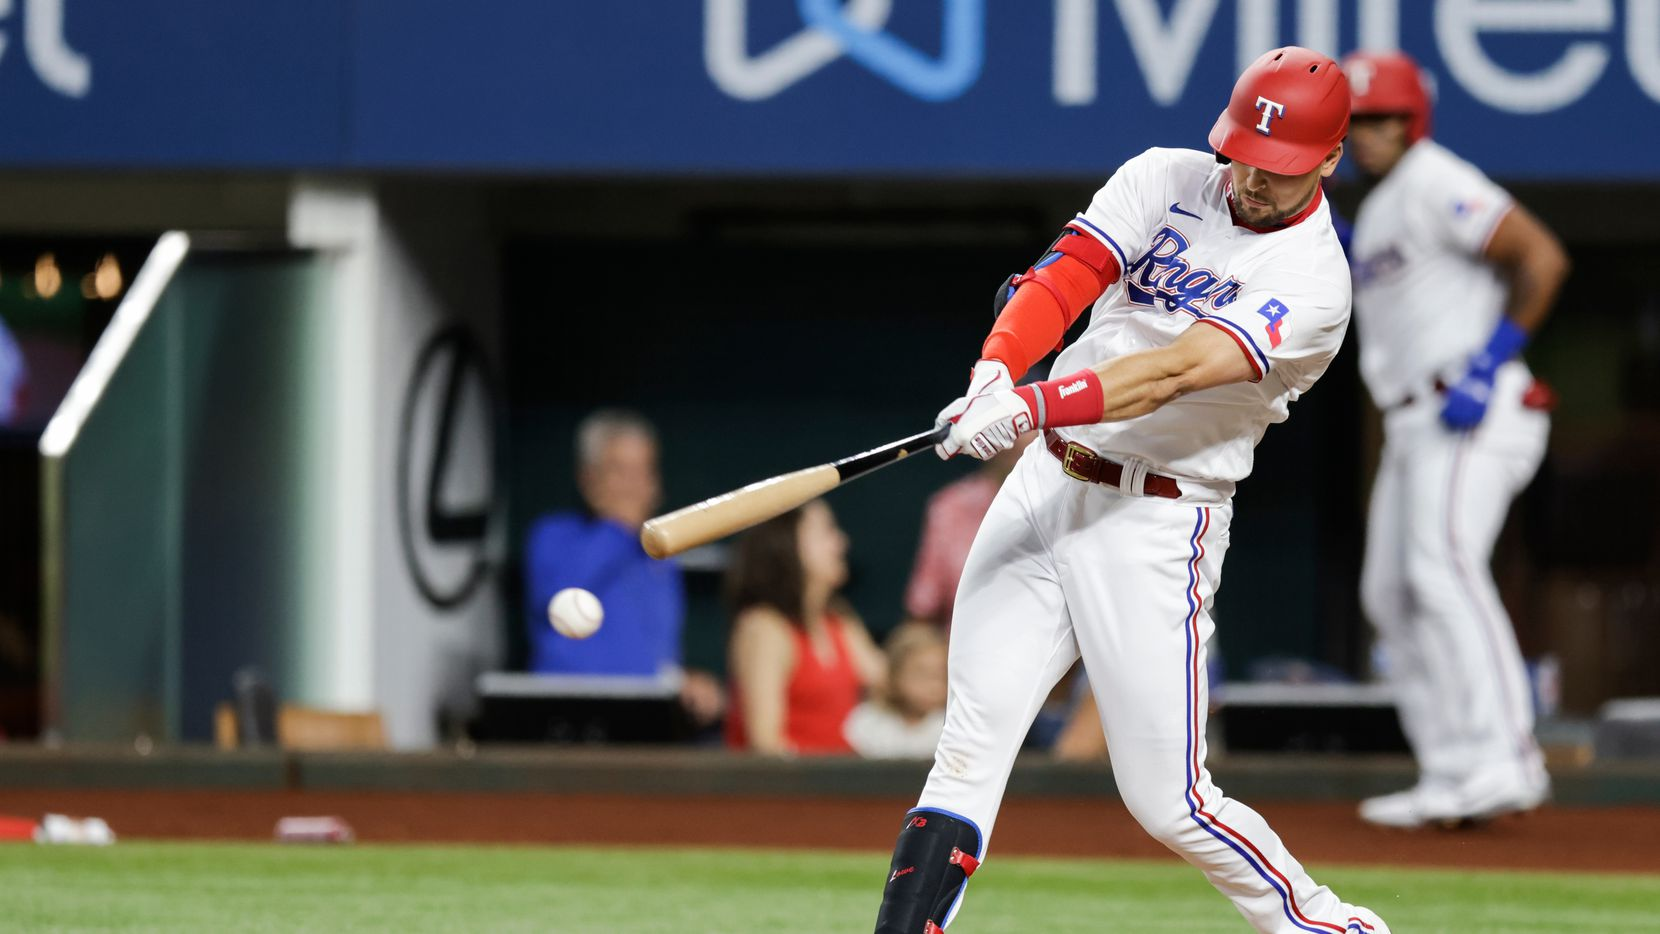 Texas Rangers'  Nate Lowe connects for an RBI double during the first inning of a baseball game against the Oakland Athletics in Arlington, Monday, June 21, 2021. (Brandon Wade/Special Contributor)